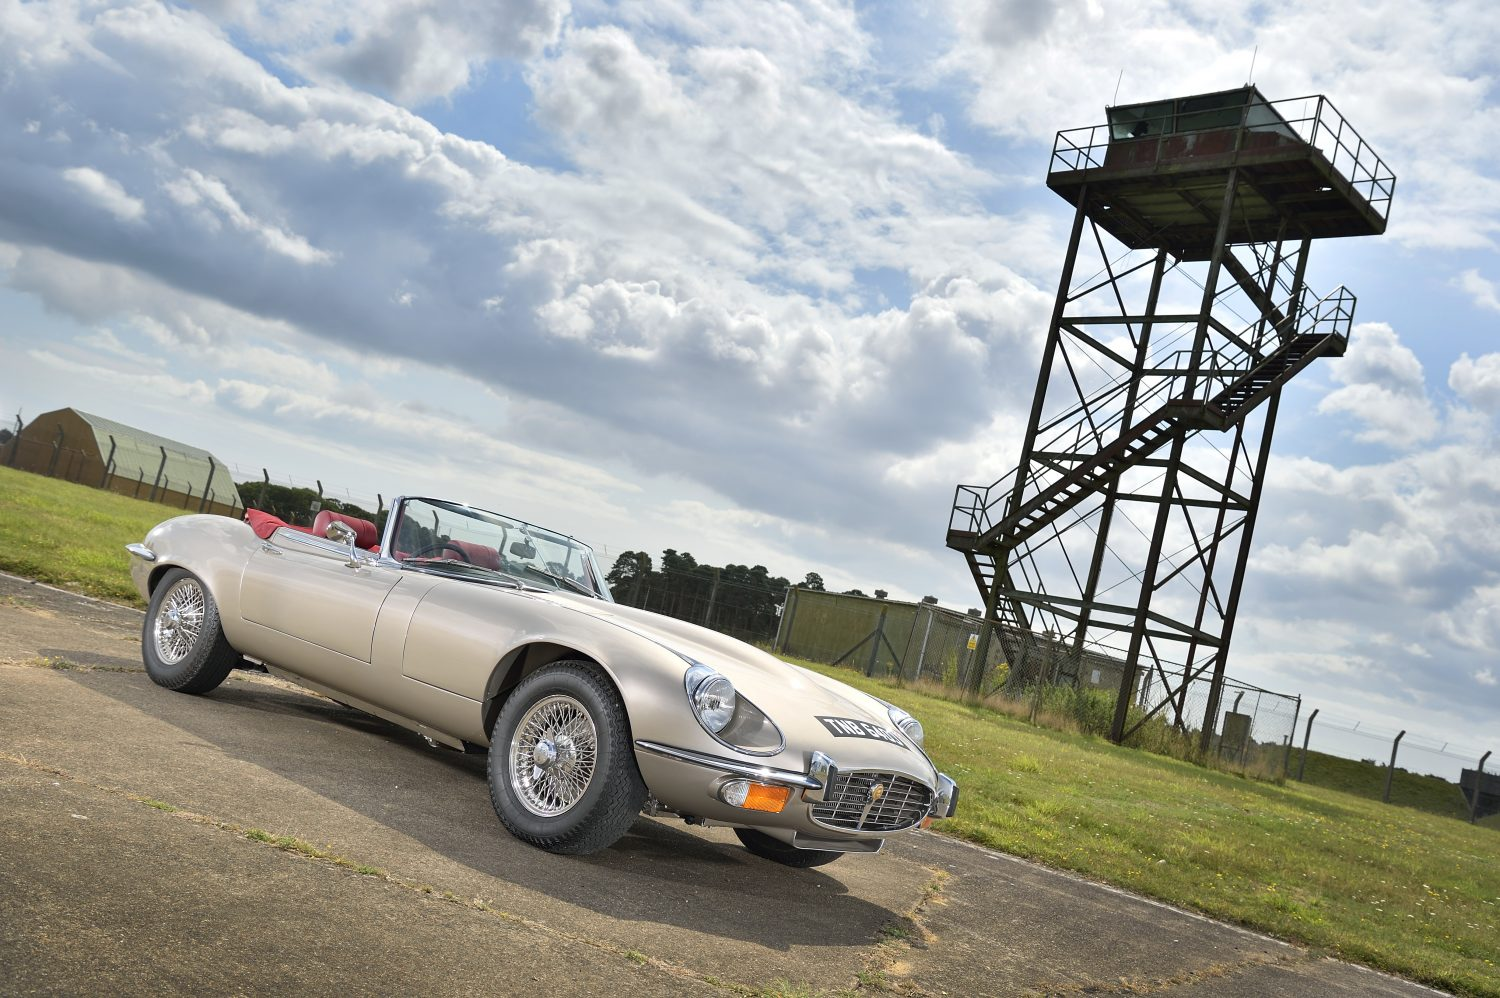 Our 1971 Jaguar E-Type Restoration Complete